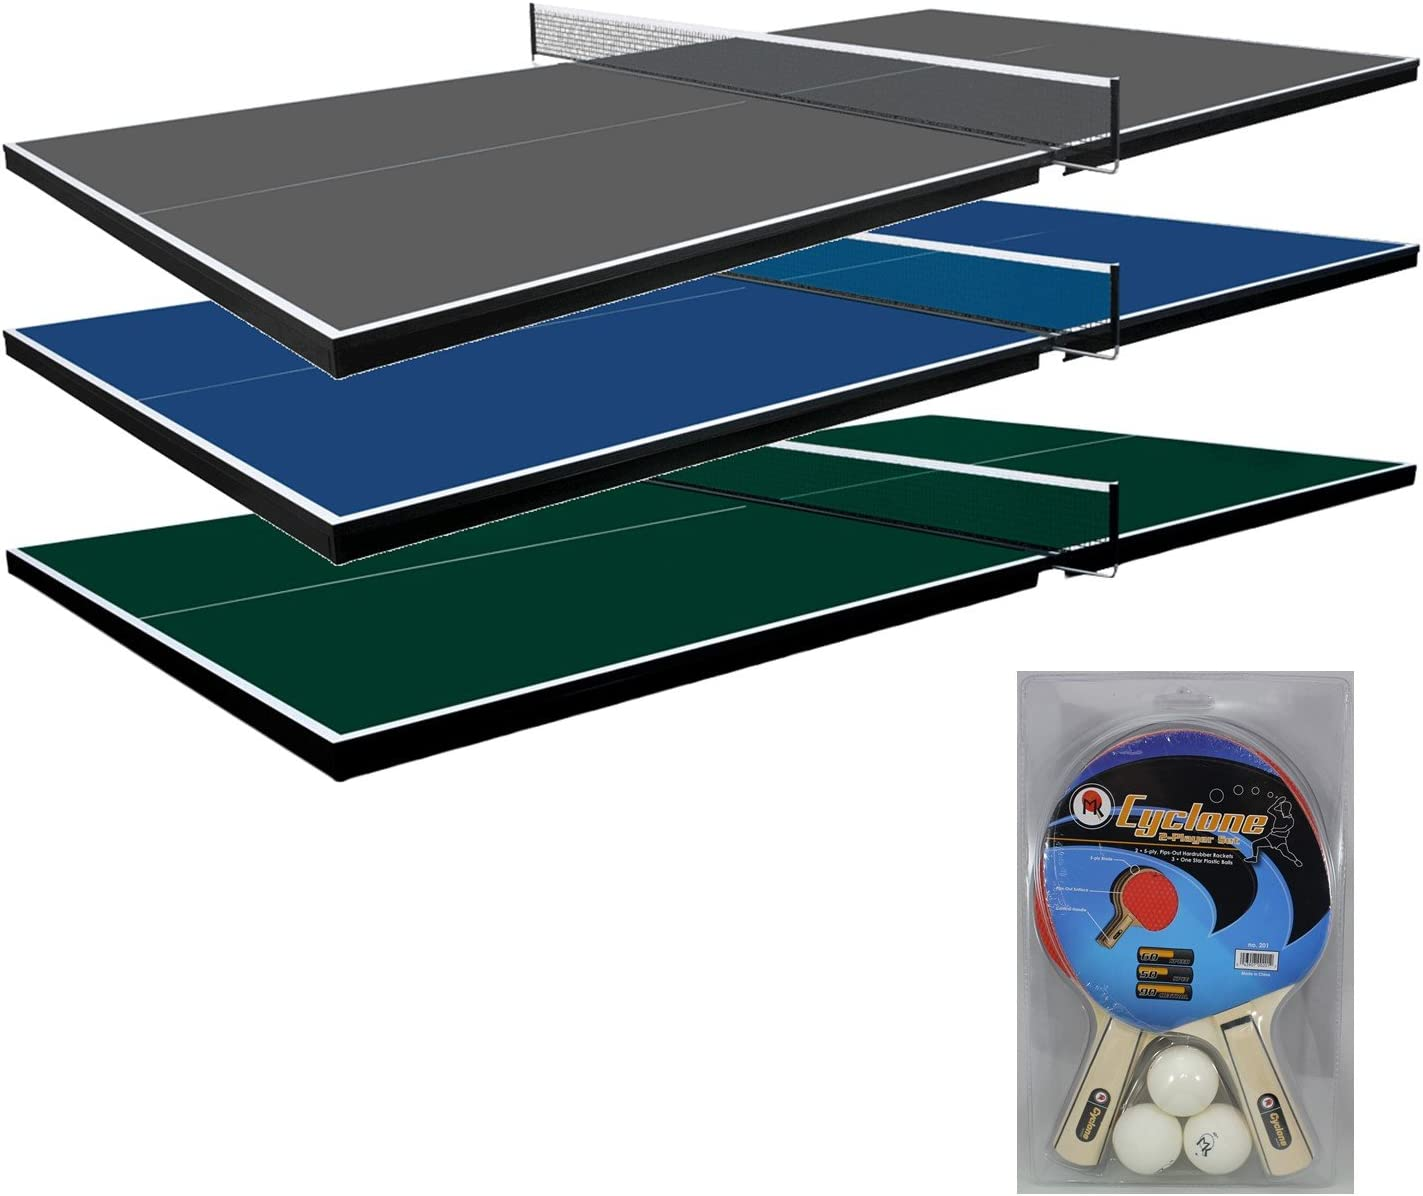 Martin Kilpatrick Ping Pong Table for Billiard Table Conversion Table Tennis Game Table Table Tennis Table w Warranty Conversion Top for Pool Table Games Table Top Games Ping Pong Table Top, Green